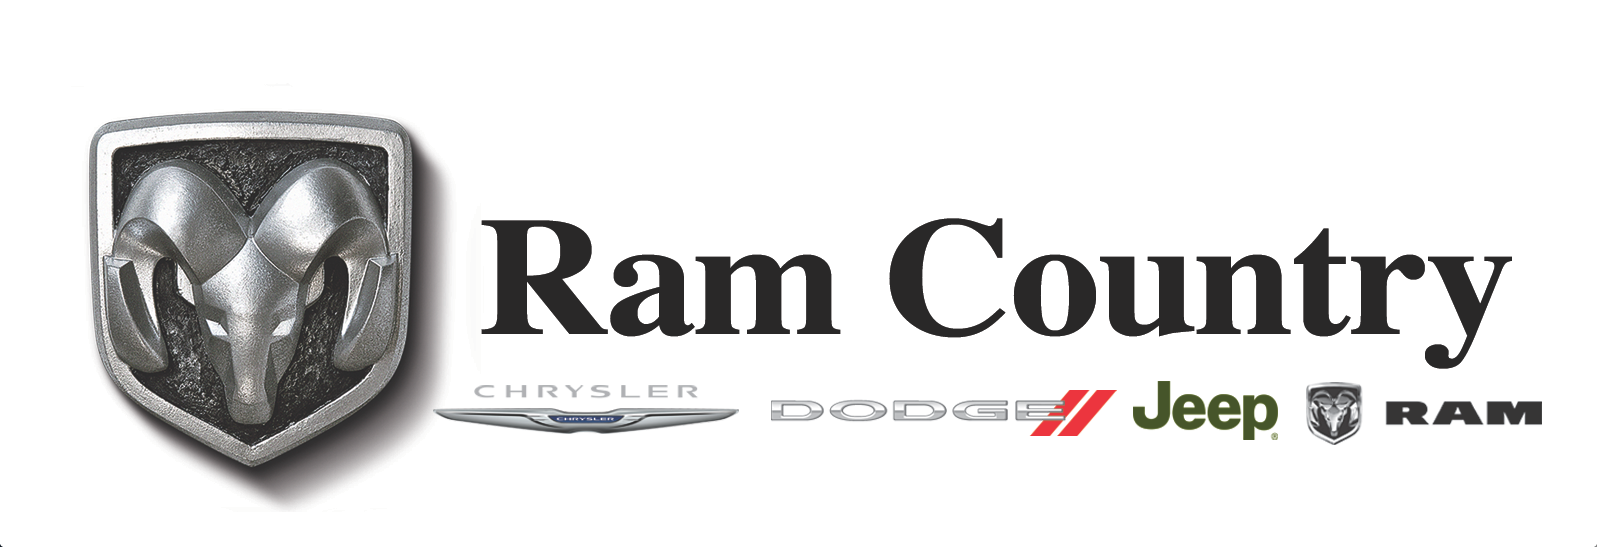 Ram Country Chrysler Jeep Dodge Del Rio Tx Read Consumer Reviews Browse Used And New Cars